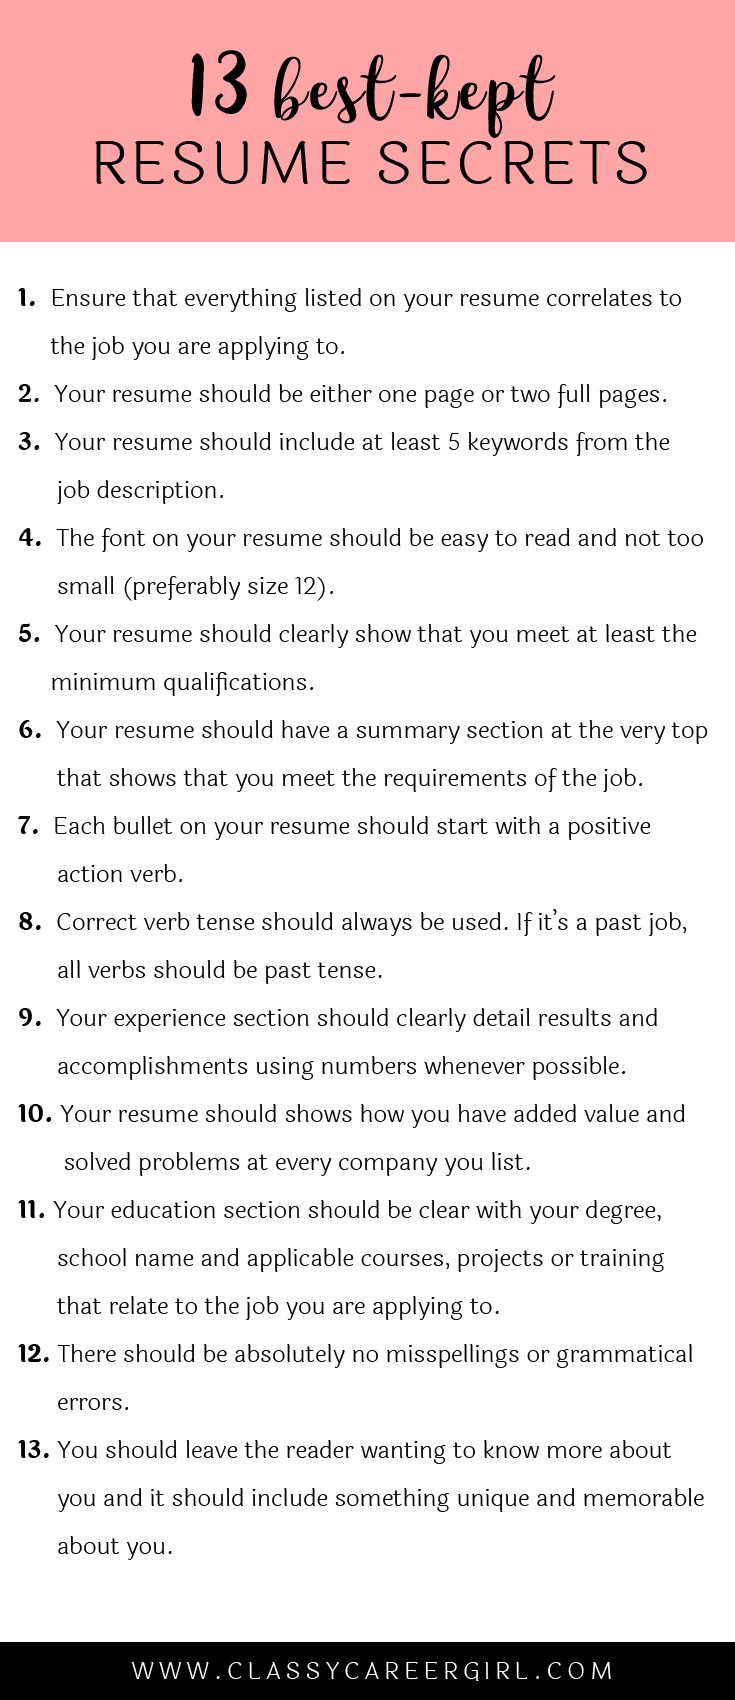 Opposenewapstandardsus  Terrific  Ideas About Resume On Pinterest  Cv Format Resume Cv And  With Hot Some Hiring Managers Will Toss Your Resume Out If You Dont Know These  With Beautiful Electronic Assembler Resume Also Buy A Resume In Addition Functional Resume Template Pdf And Proofreader Resume As Well As Freelance On Resume Additionally Adjunct Professor Resume Sample From Pinterestcom With Opposenewapstandardsus  Hot  Ideas About Resume On Pinterest  Cv Format Resume Cv And  With Beautiful Some Hiring Managers Will Toss Your Resume Out If You Dont Know These  And Terrific Electronic Assembler Resume Also Buy A Resume In Addition Functional Resume Template Pdf From Pinterestcom